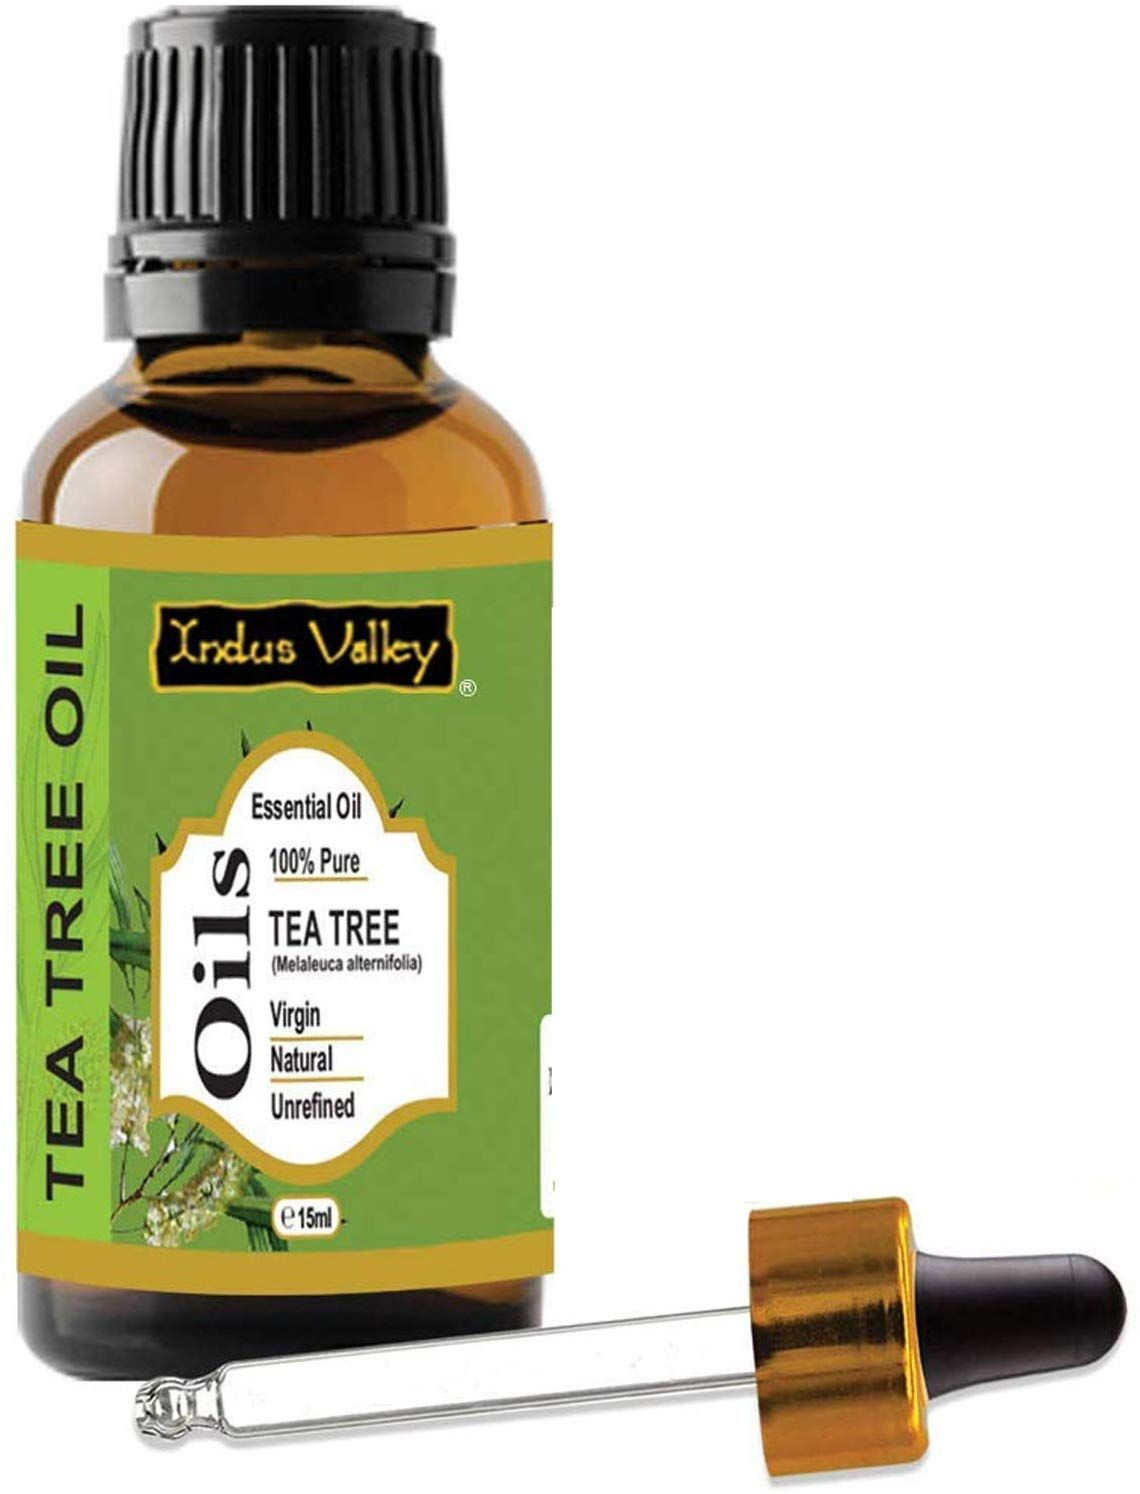 Indus valley tea tree oil